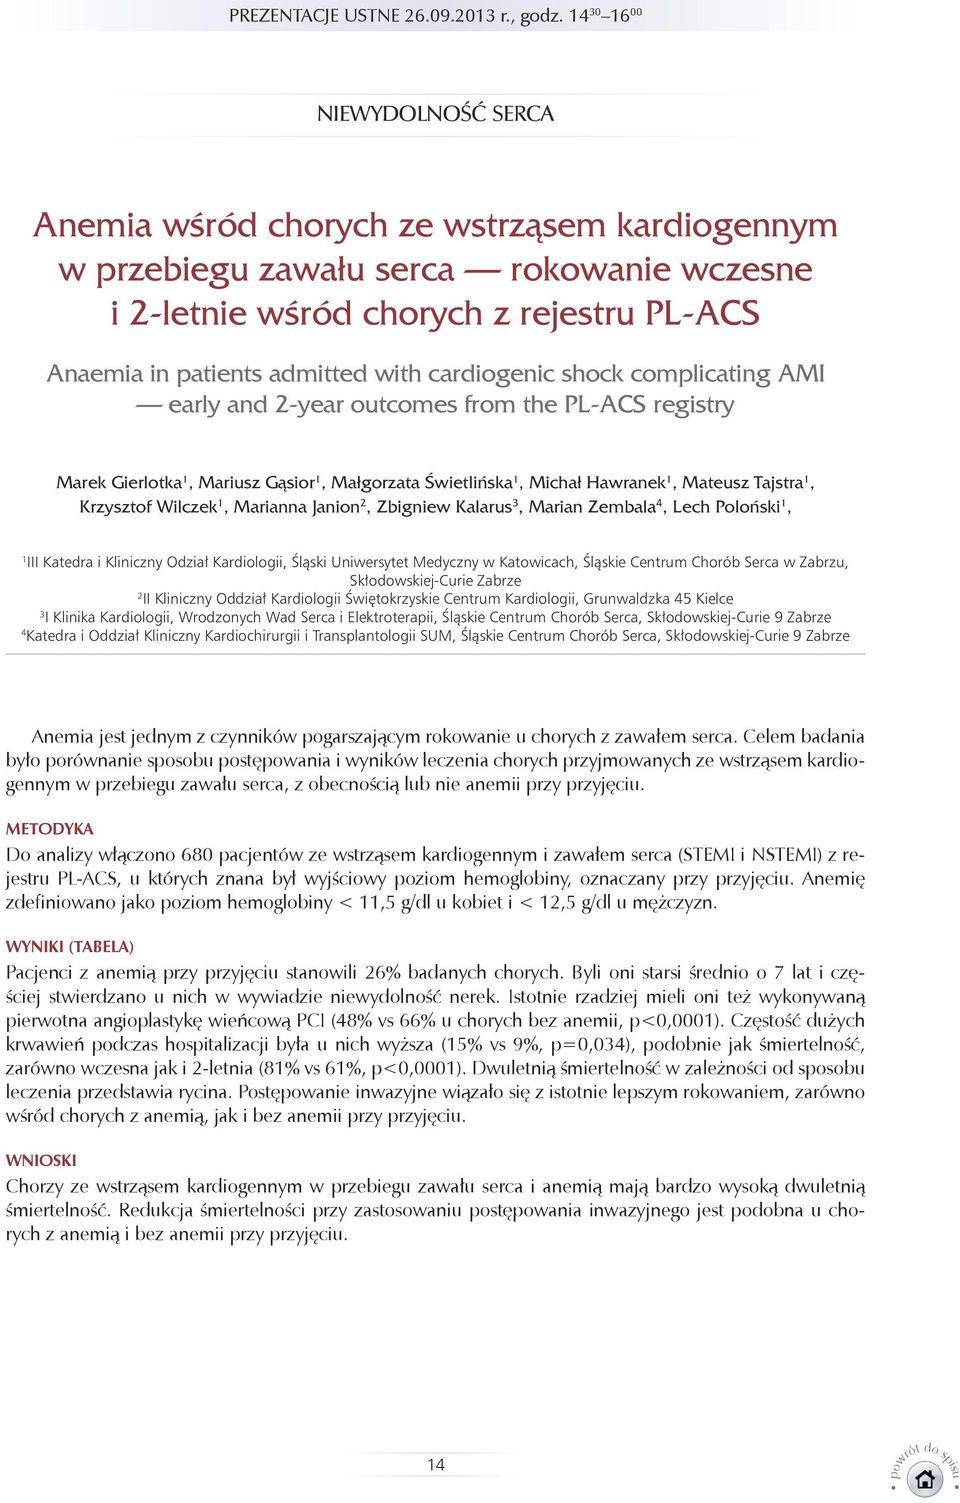 cardiogenic shock complicating AMI early and 2-year outcomes from the PL-ACS registry Marek Gierlotka 1, Mariusz Gąsior 1, Małgorzata Świetlińska 1, Michał Hawranek 1, Mateusz Tajstra 1, Krzysztof